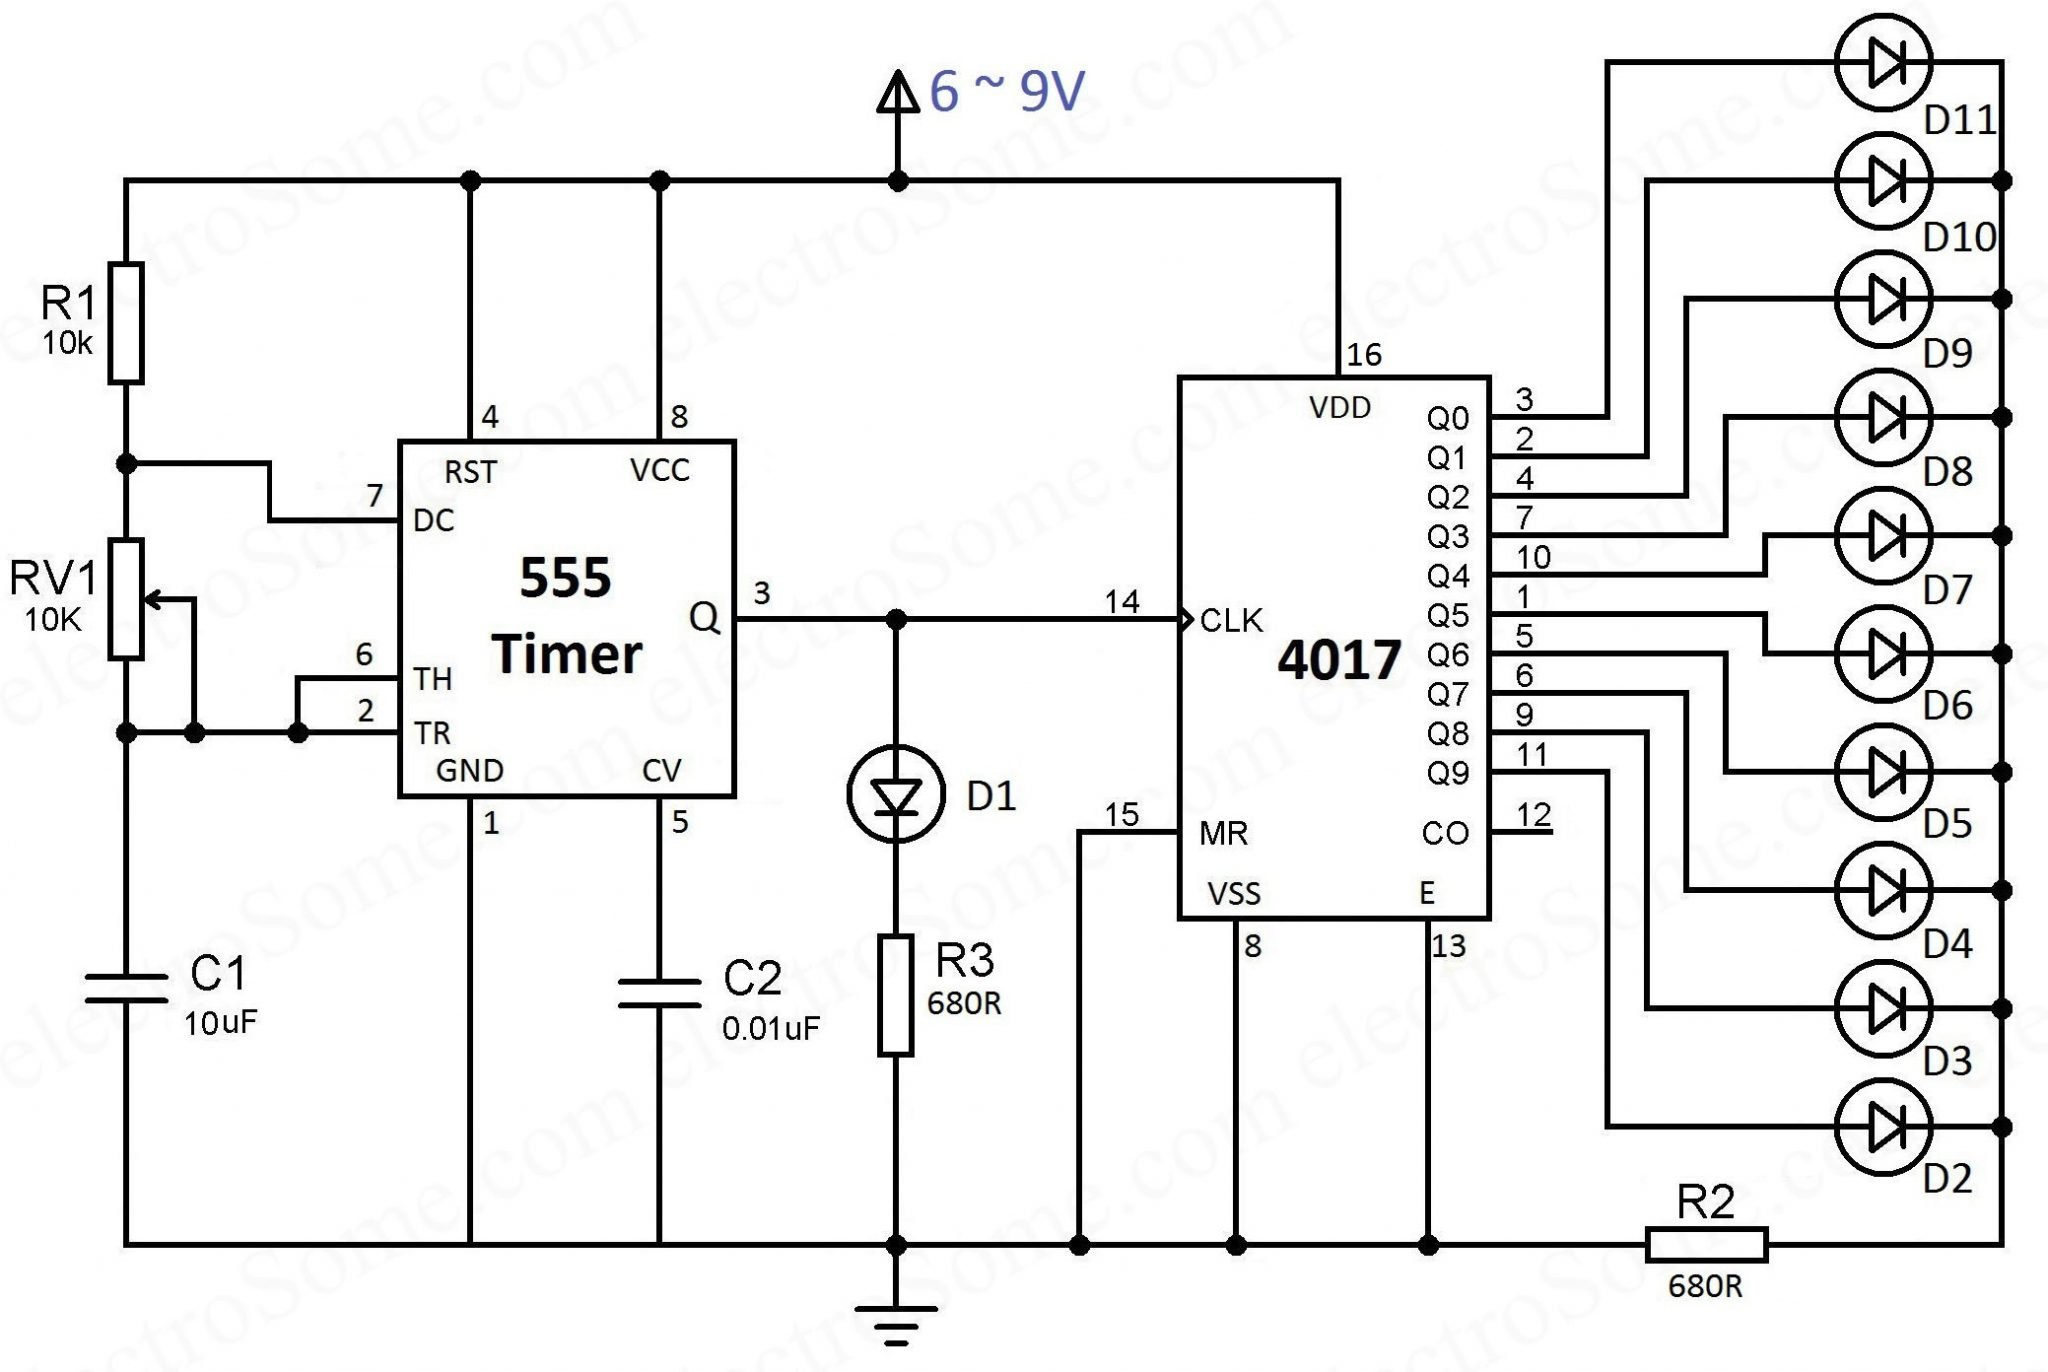 Logic Diagram 7490 Wiring Library Simple Electronic Random Number Generator Circuit Using 555 And 4026 Led Chaser 4017 Counter Timer